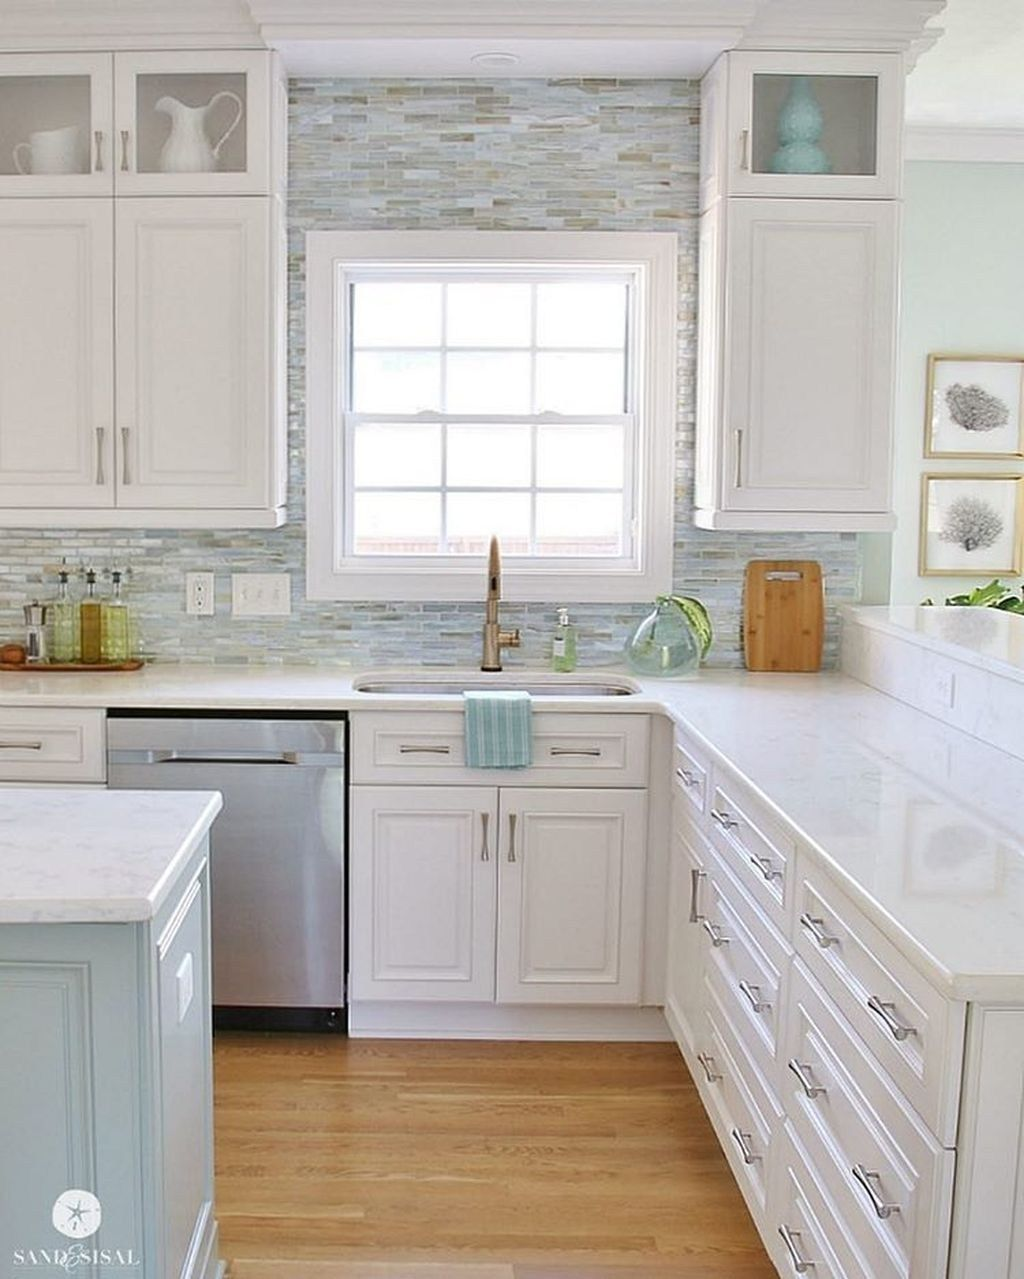 Gorgeous Coastal Kitchen Design Ideas 41 Coastal Kitchen Design Beach House Kitchens White Kitchen Design